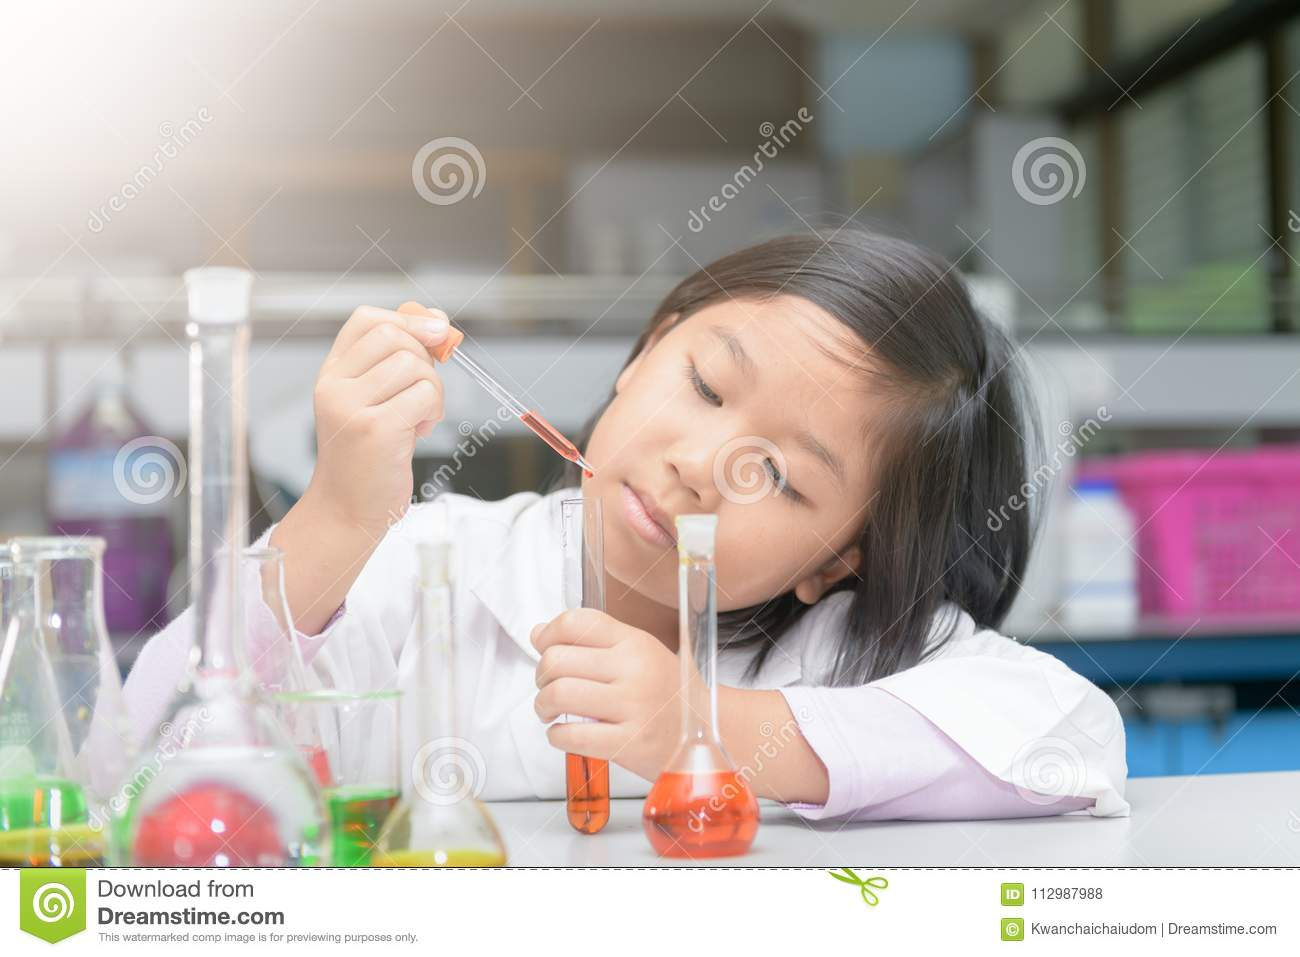 Student in lab coat making experiment with test tube